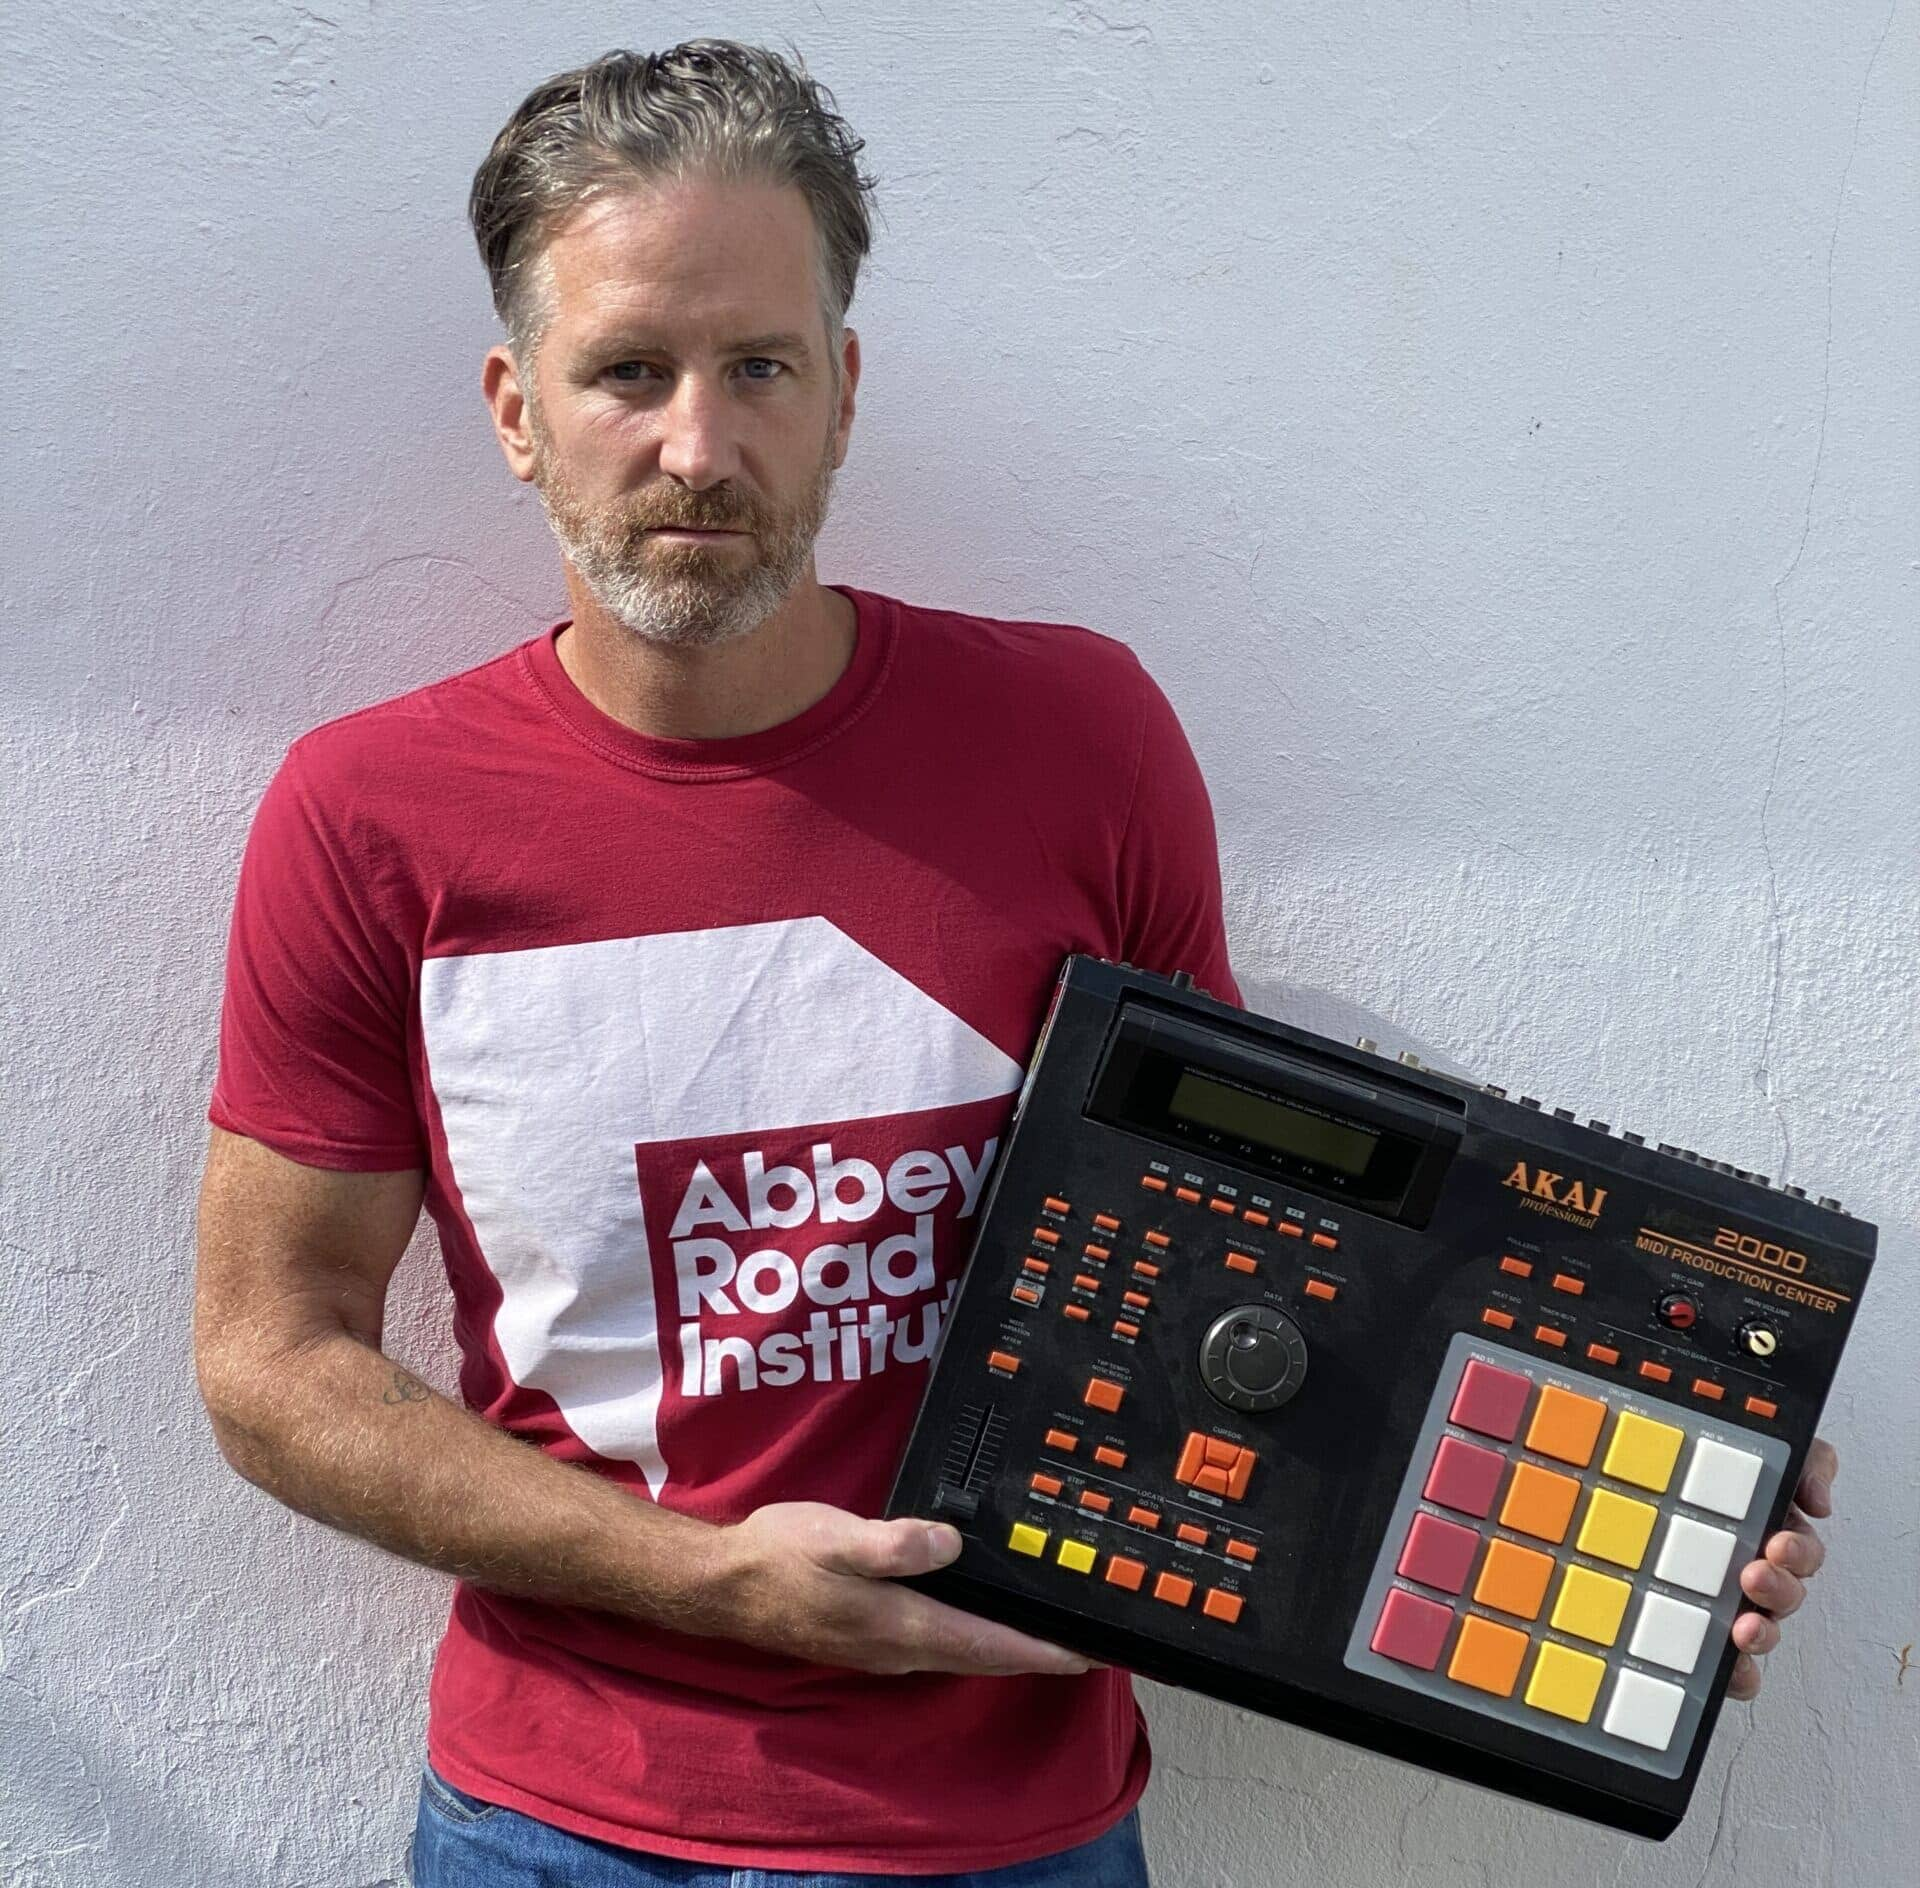 Jason and the Akai MPC 2000 '808 custom'